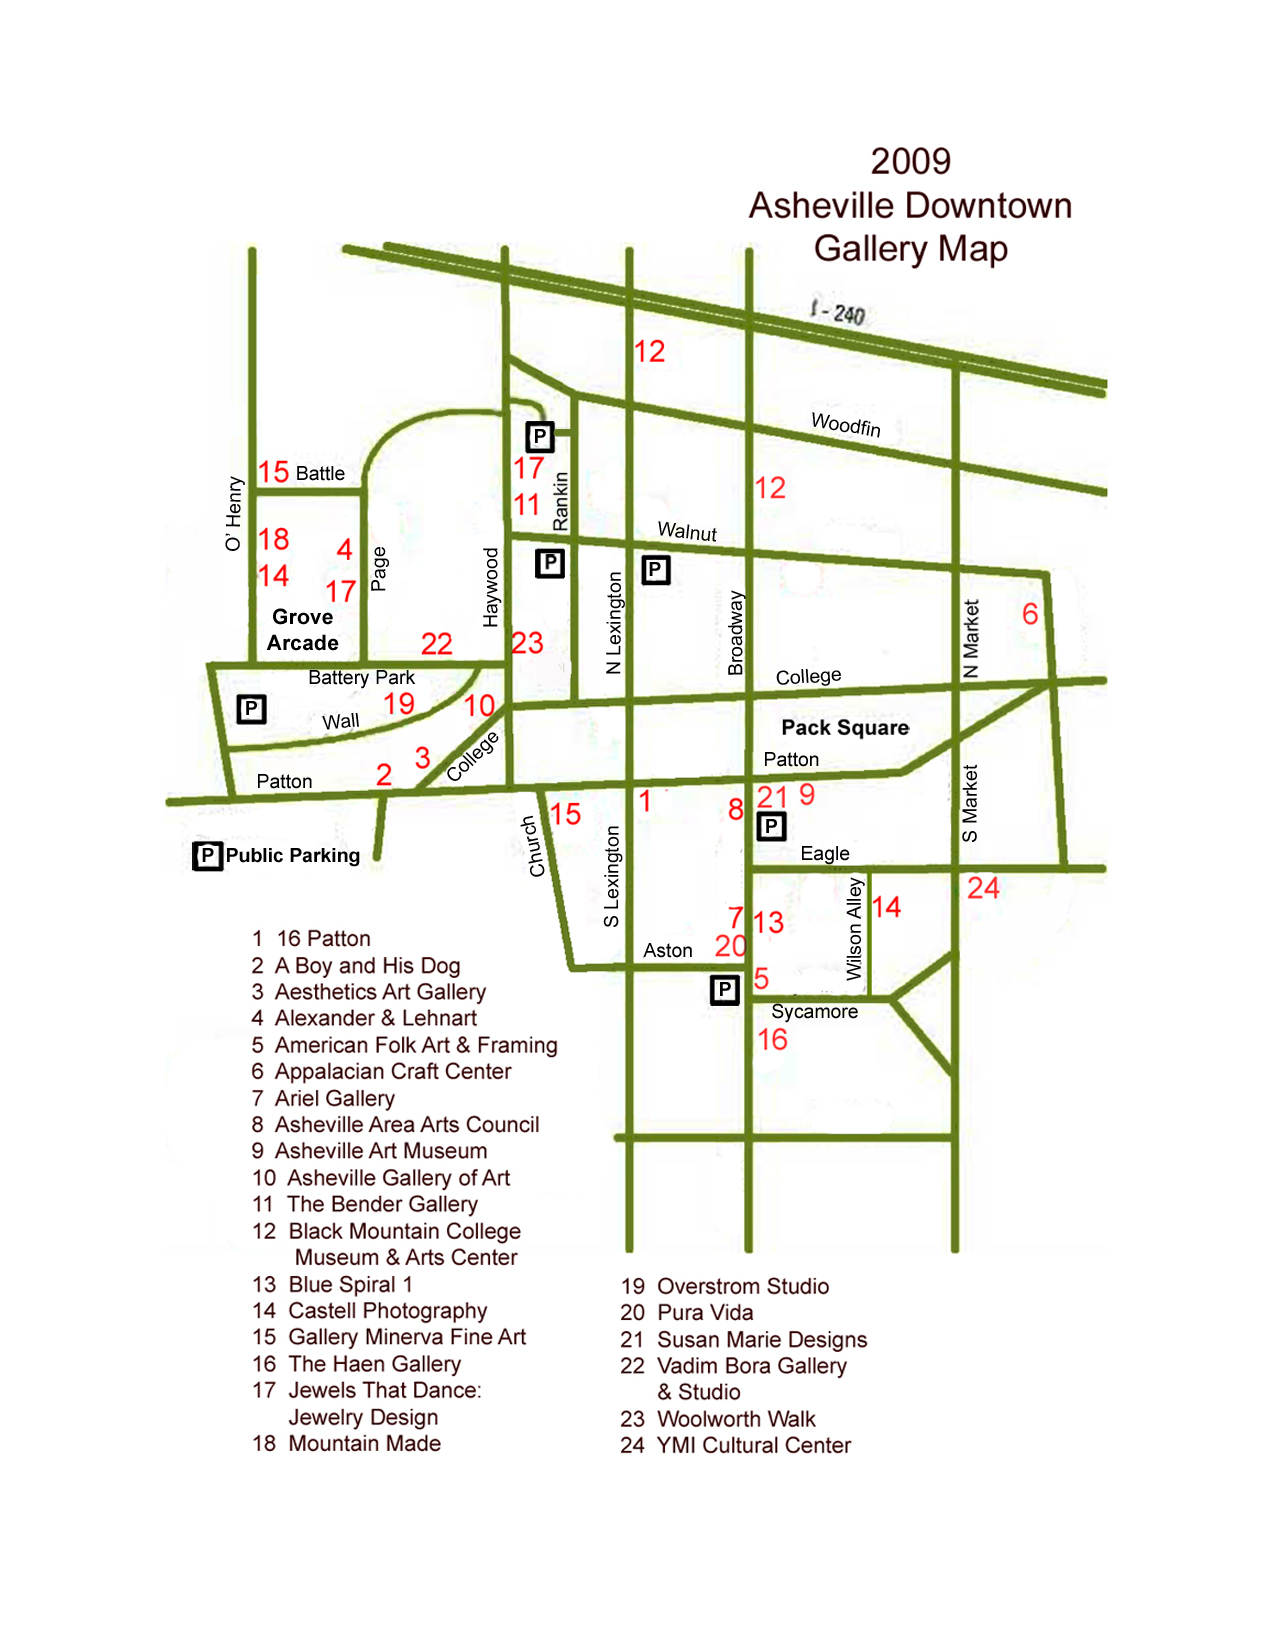 Downtown Asheville Galleria Map 56 Broadway St Downtown Asheville